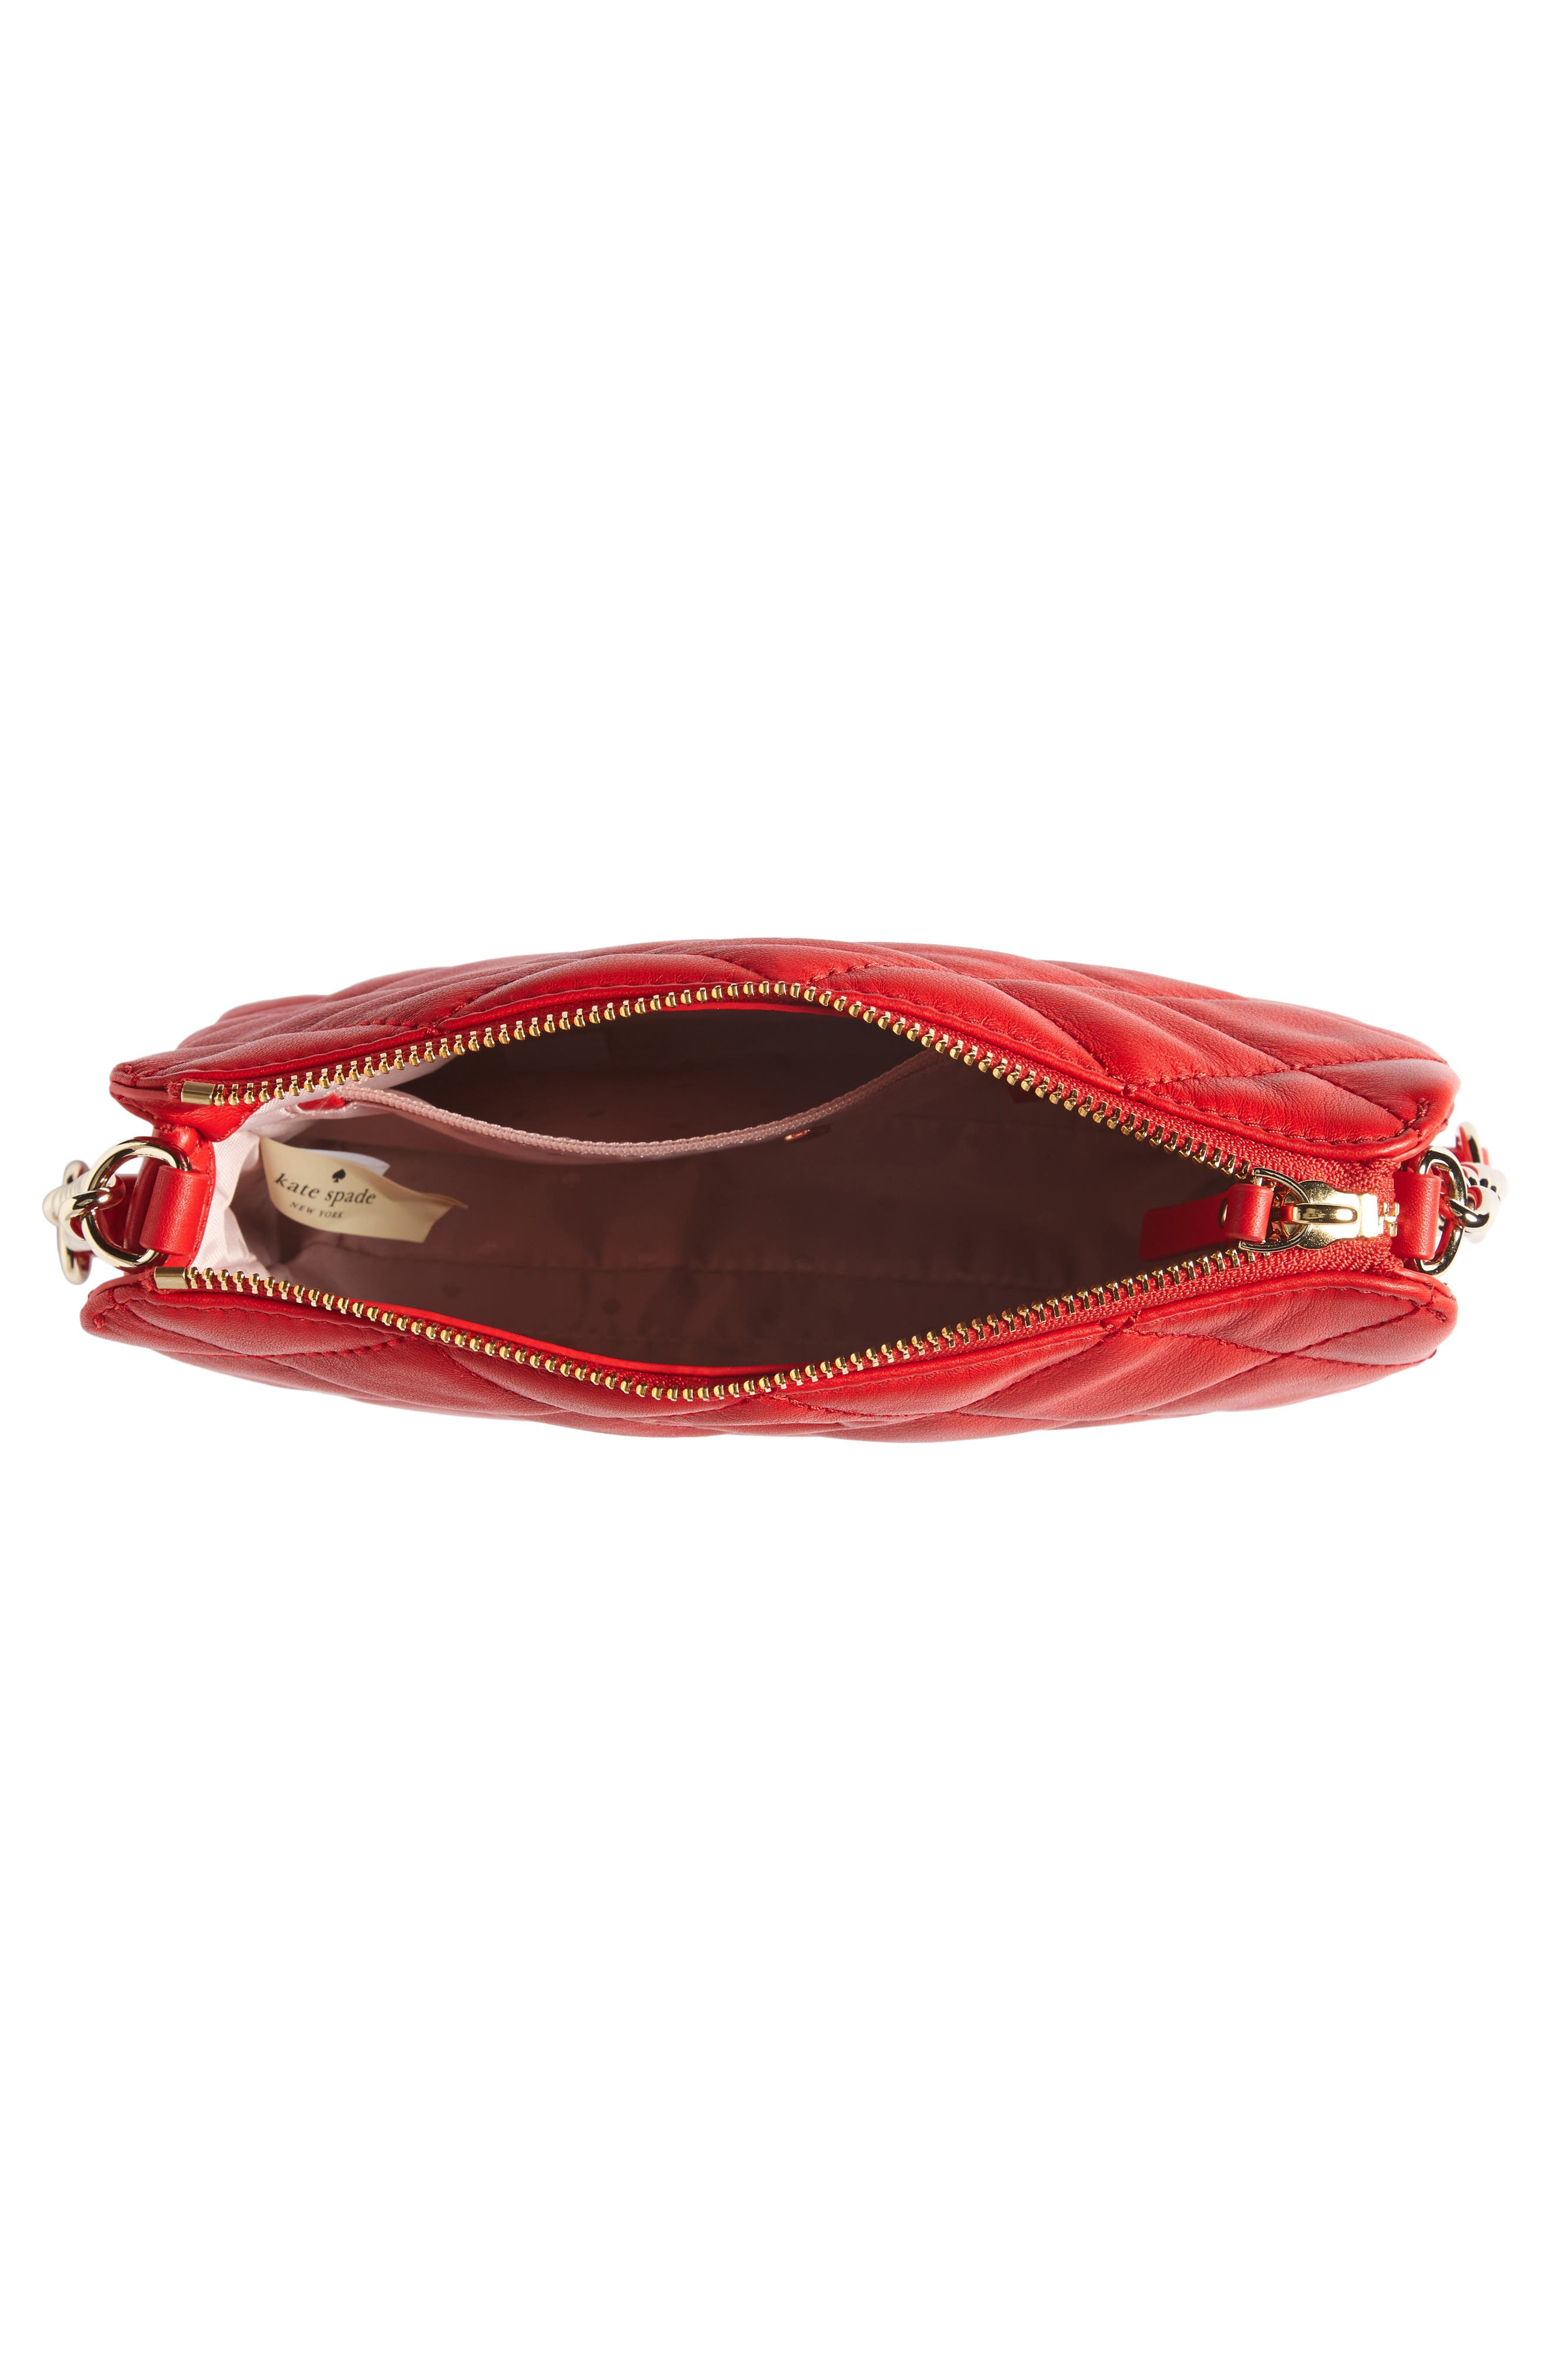 emerson place harbor leather crossbody bag,                             Alternate thumbnail 33, color,